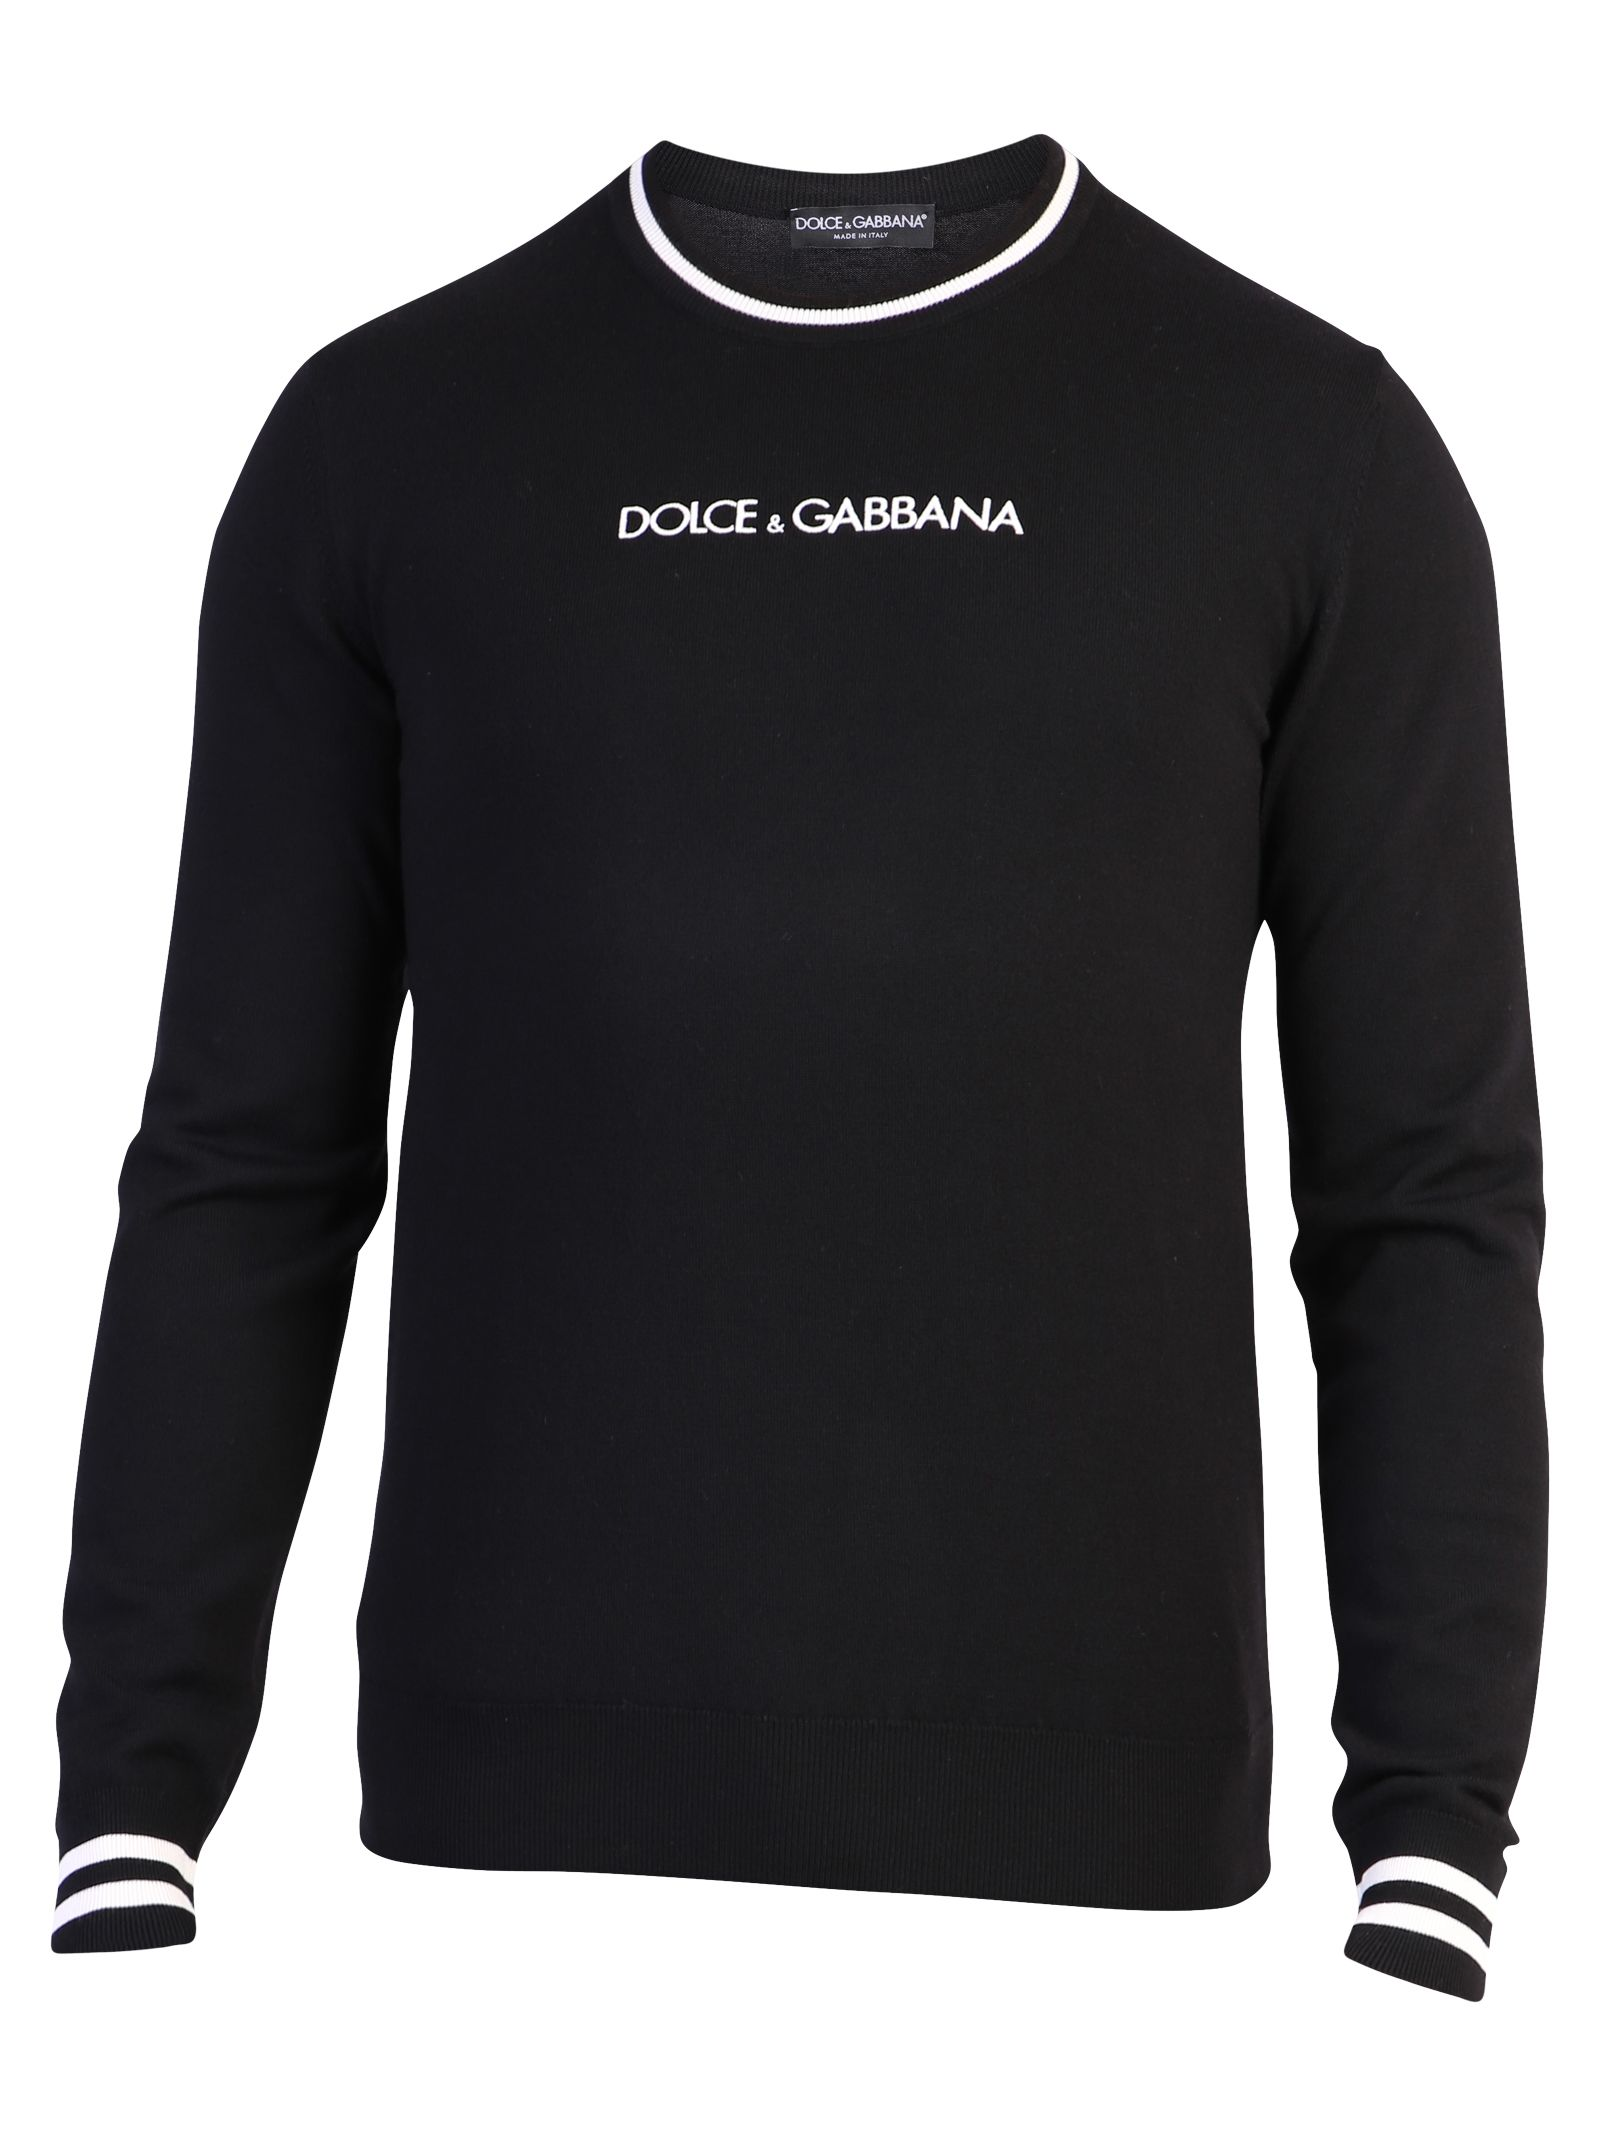 Dolce & Gabbana Branded Sweater